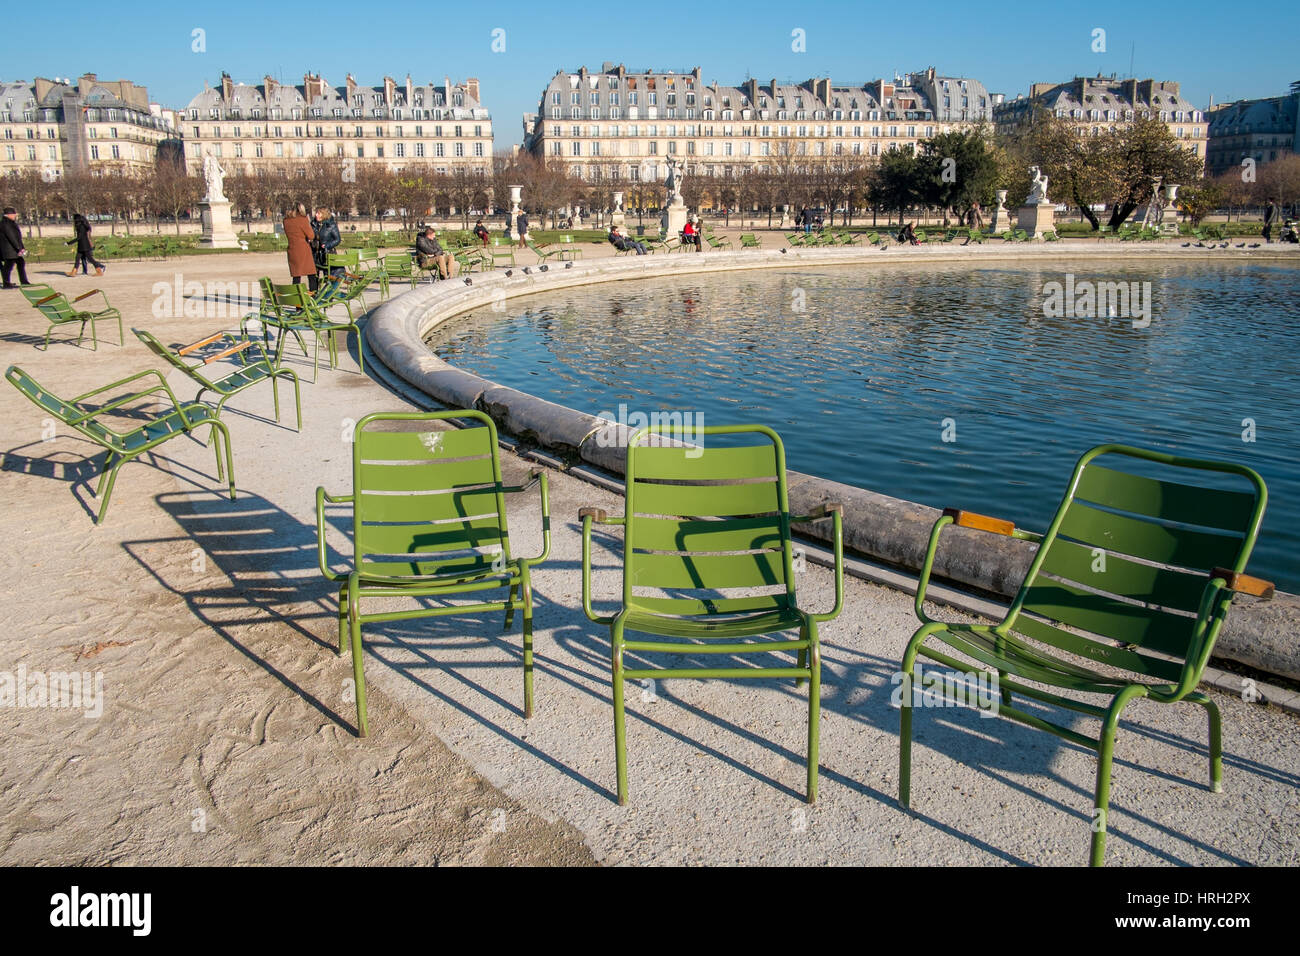 Enjoying the winter sun at Grand bassin octogonal at the Jardin des Tuileries, overlooked by the grand appartments - Stock Image